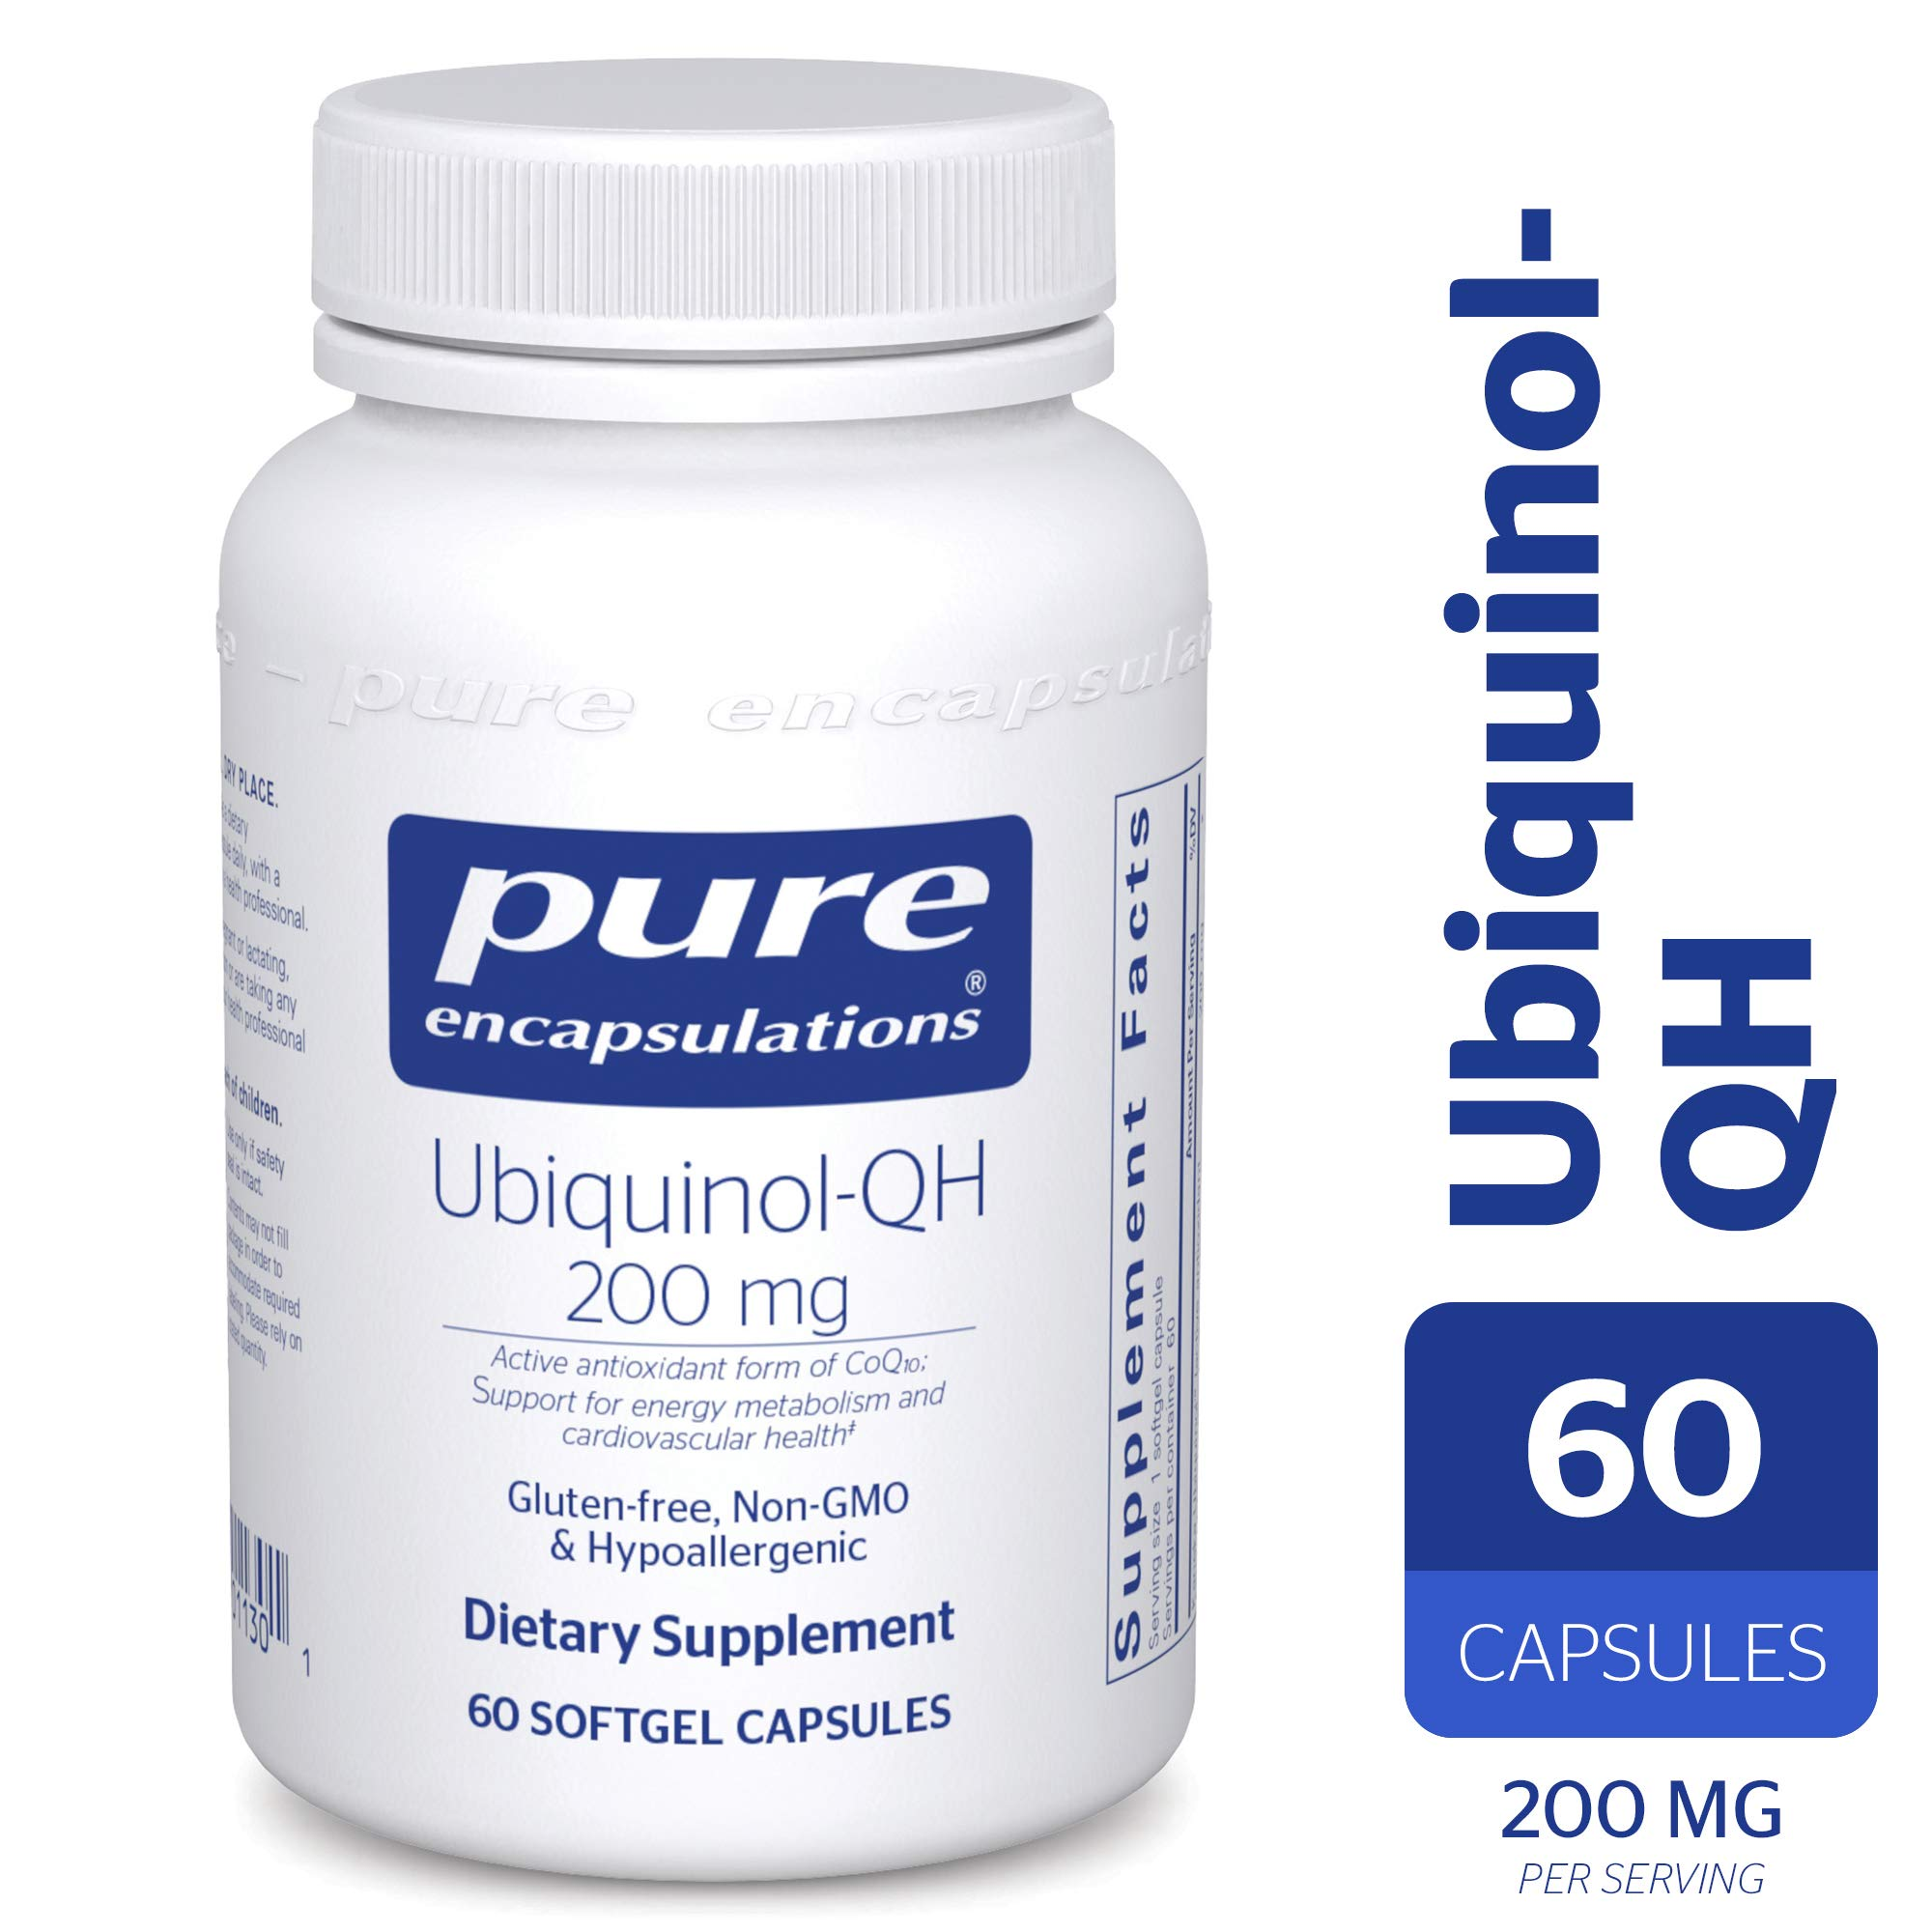 Pure Encapsulations - Ubiquinol-QH 200 mg - Hypoallergenic Supplement - Active Antioxidant Form of CoQ10-60 Softgel Capsules by Pure Encapsulations (Image #1)